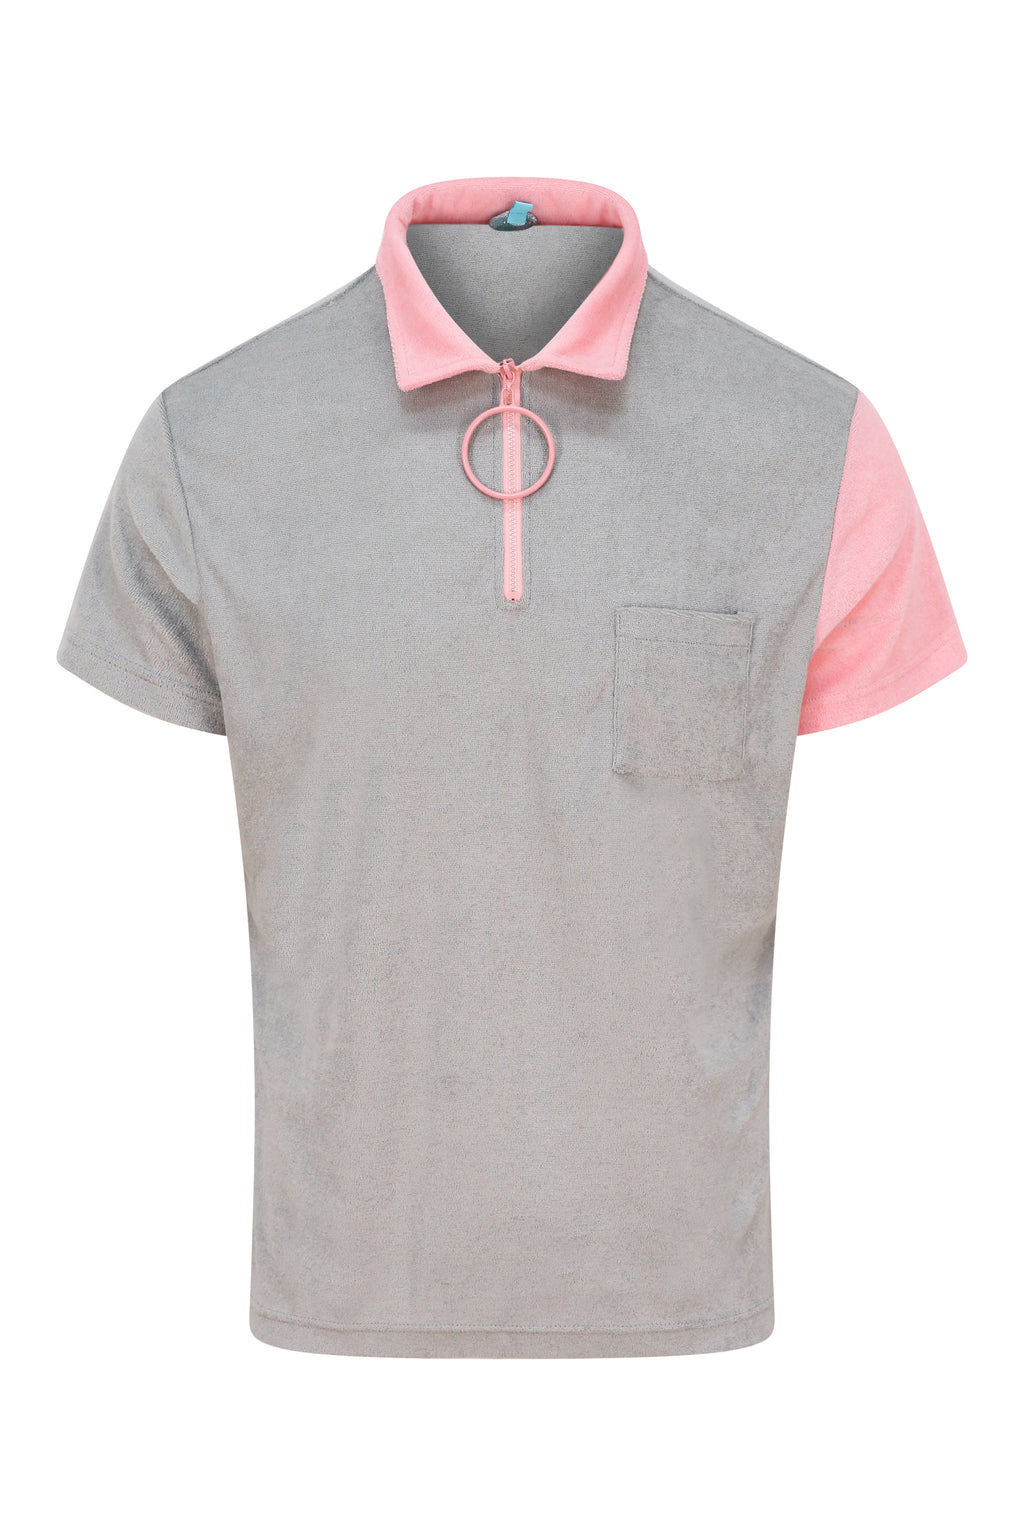 Unisex Grey and Pink Zip Polo